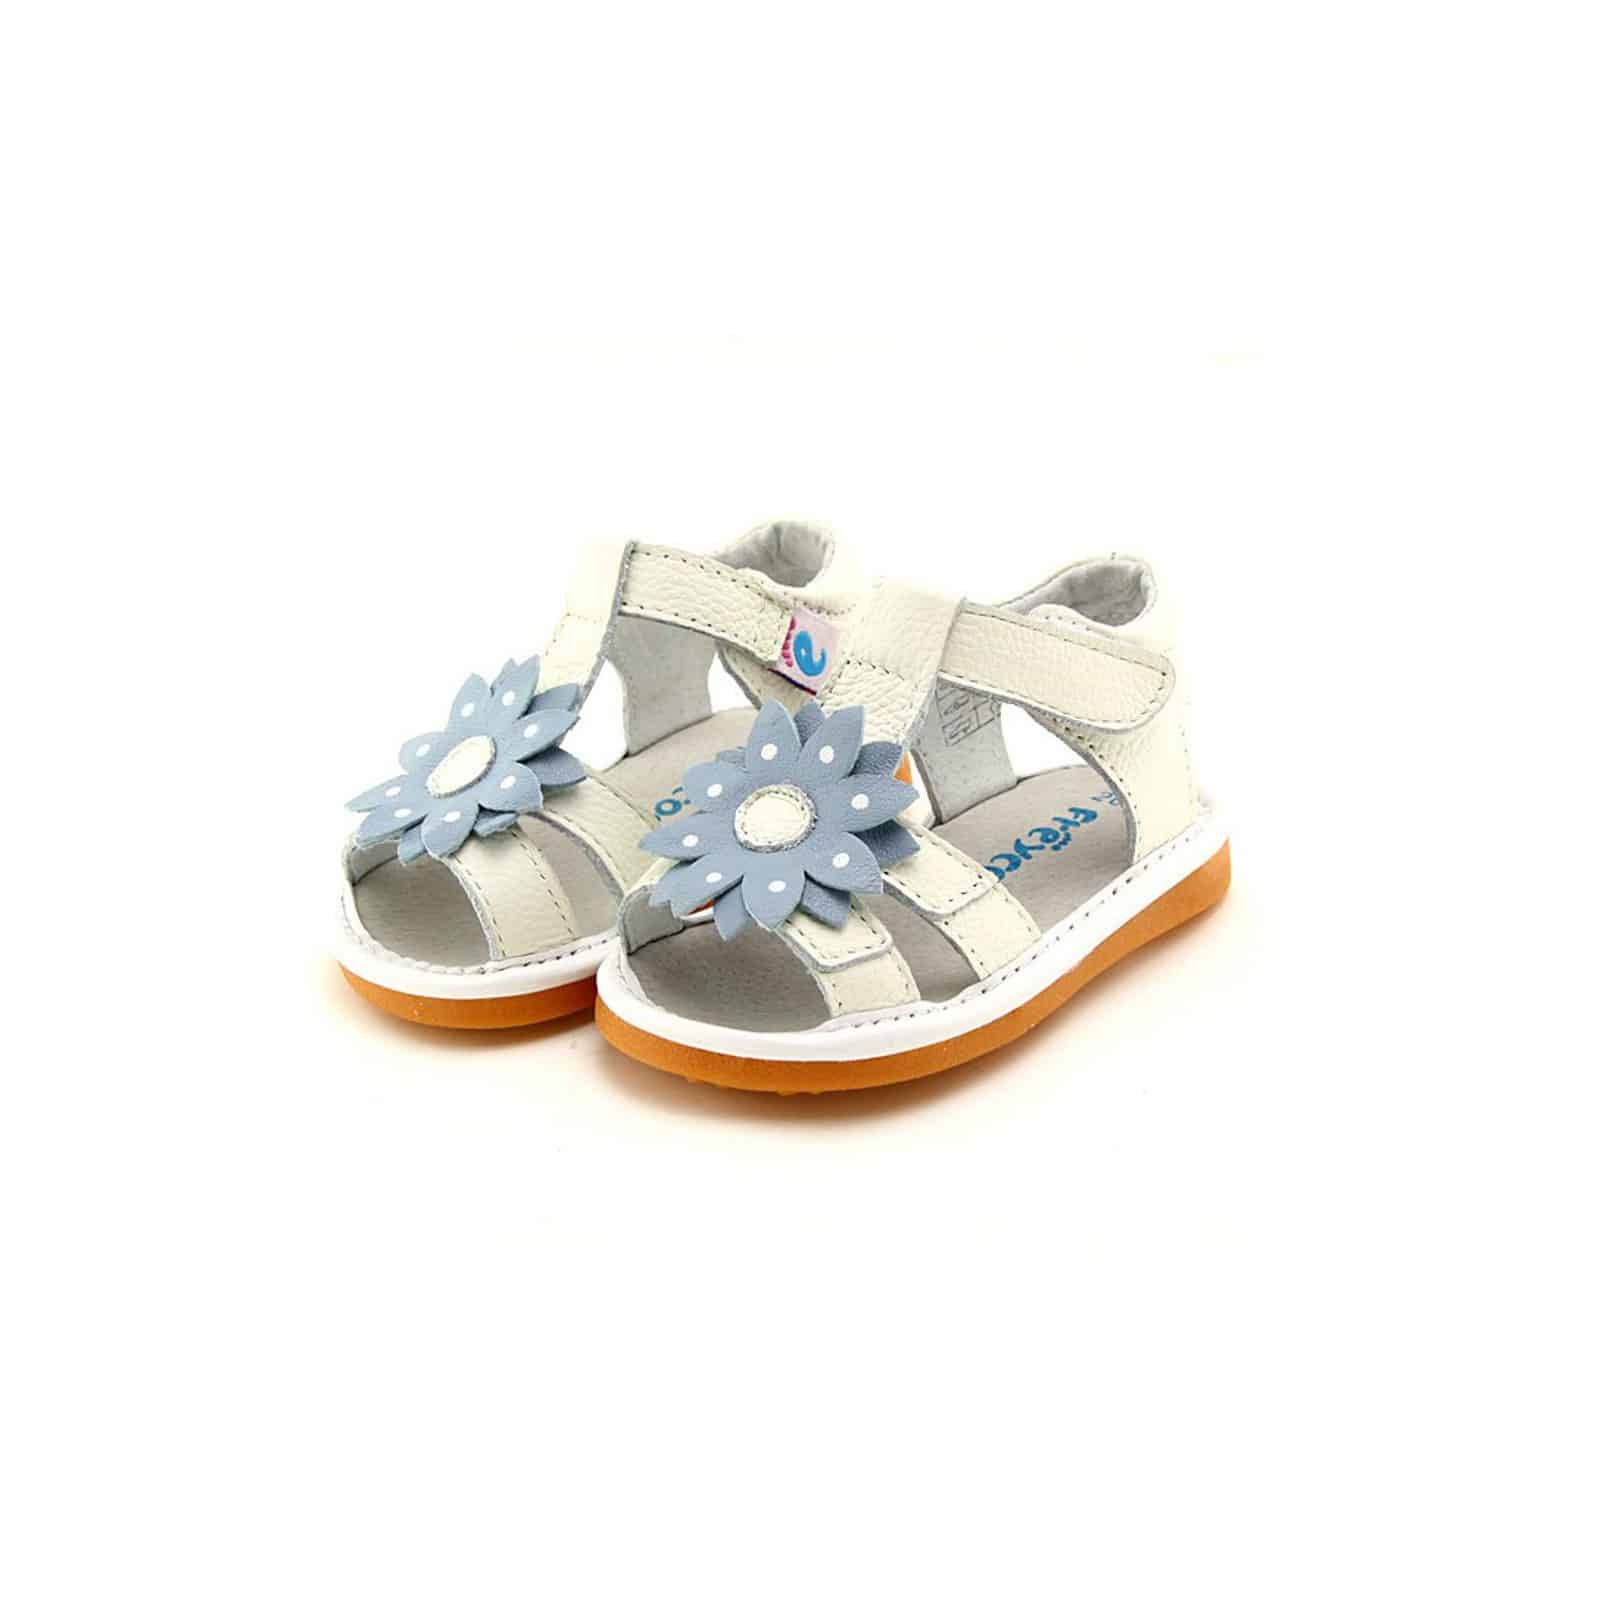 Freycoo Squeaky Leather Toddler Girls Shoes White Sandals With